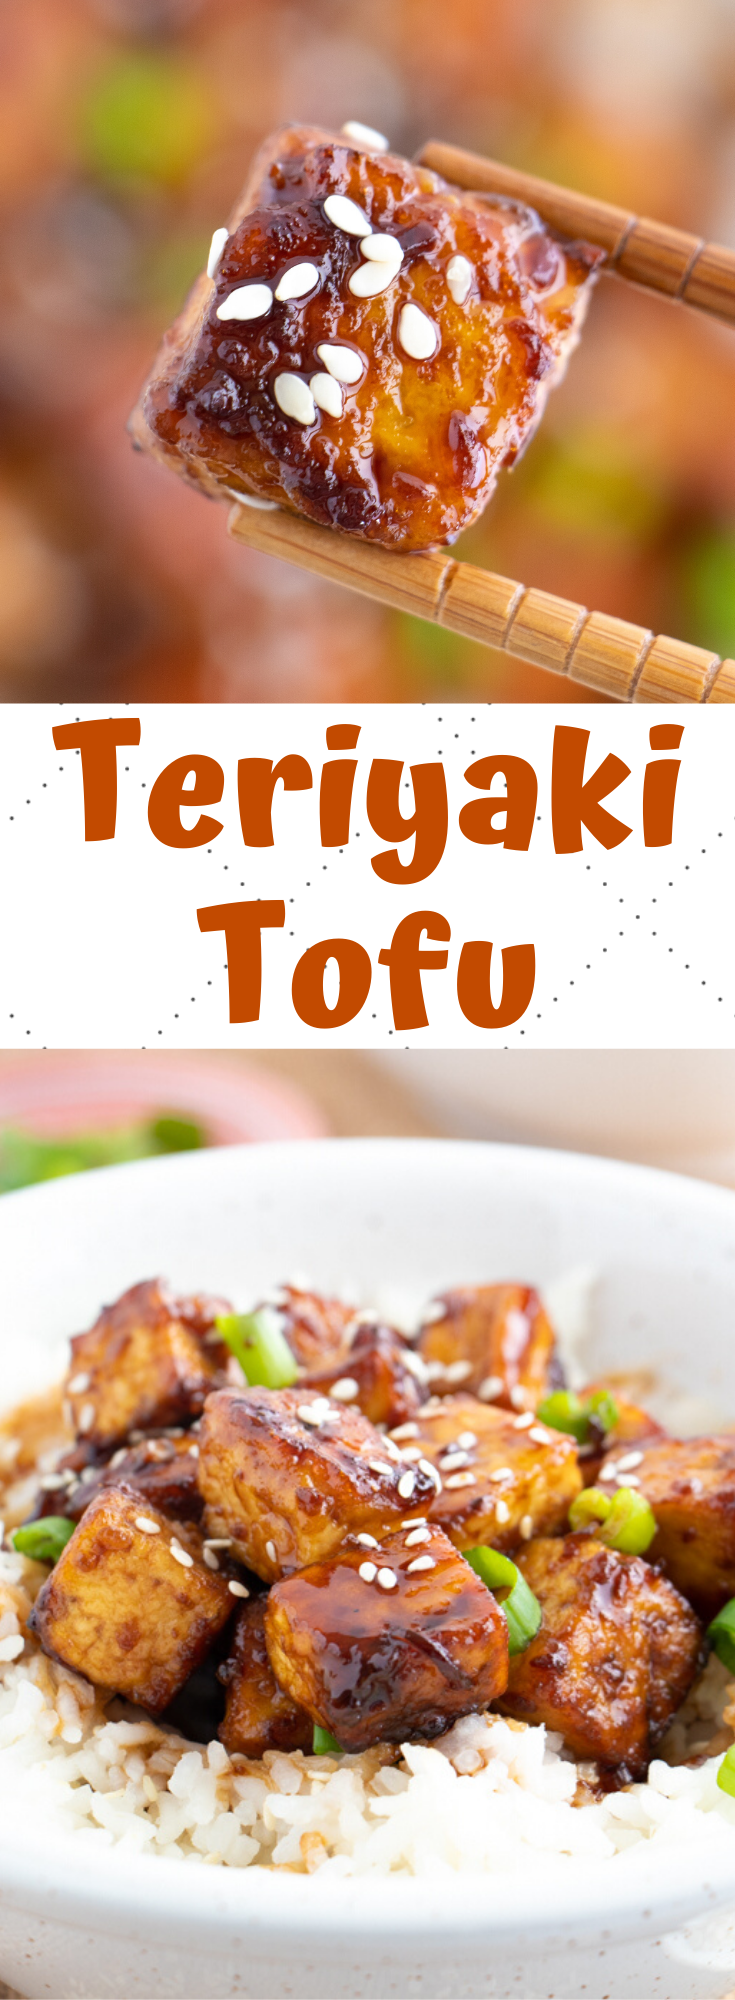 Photo of Vegan Teriyaki Tofu